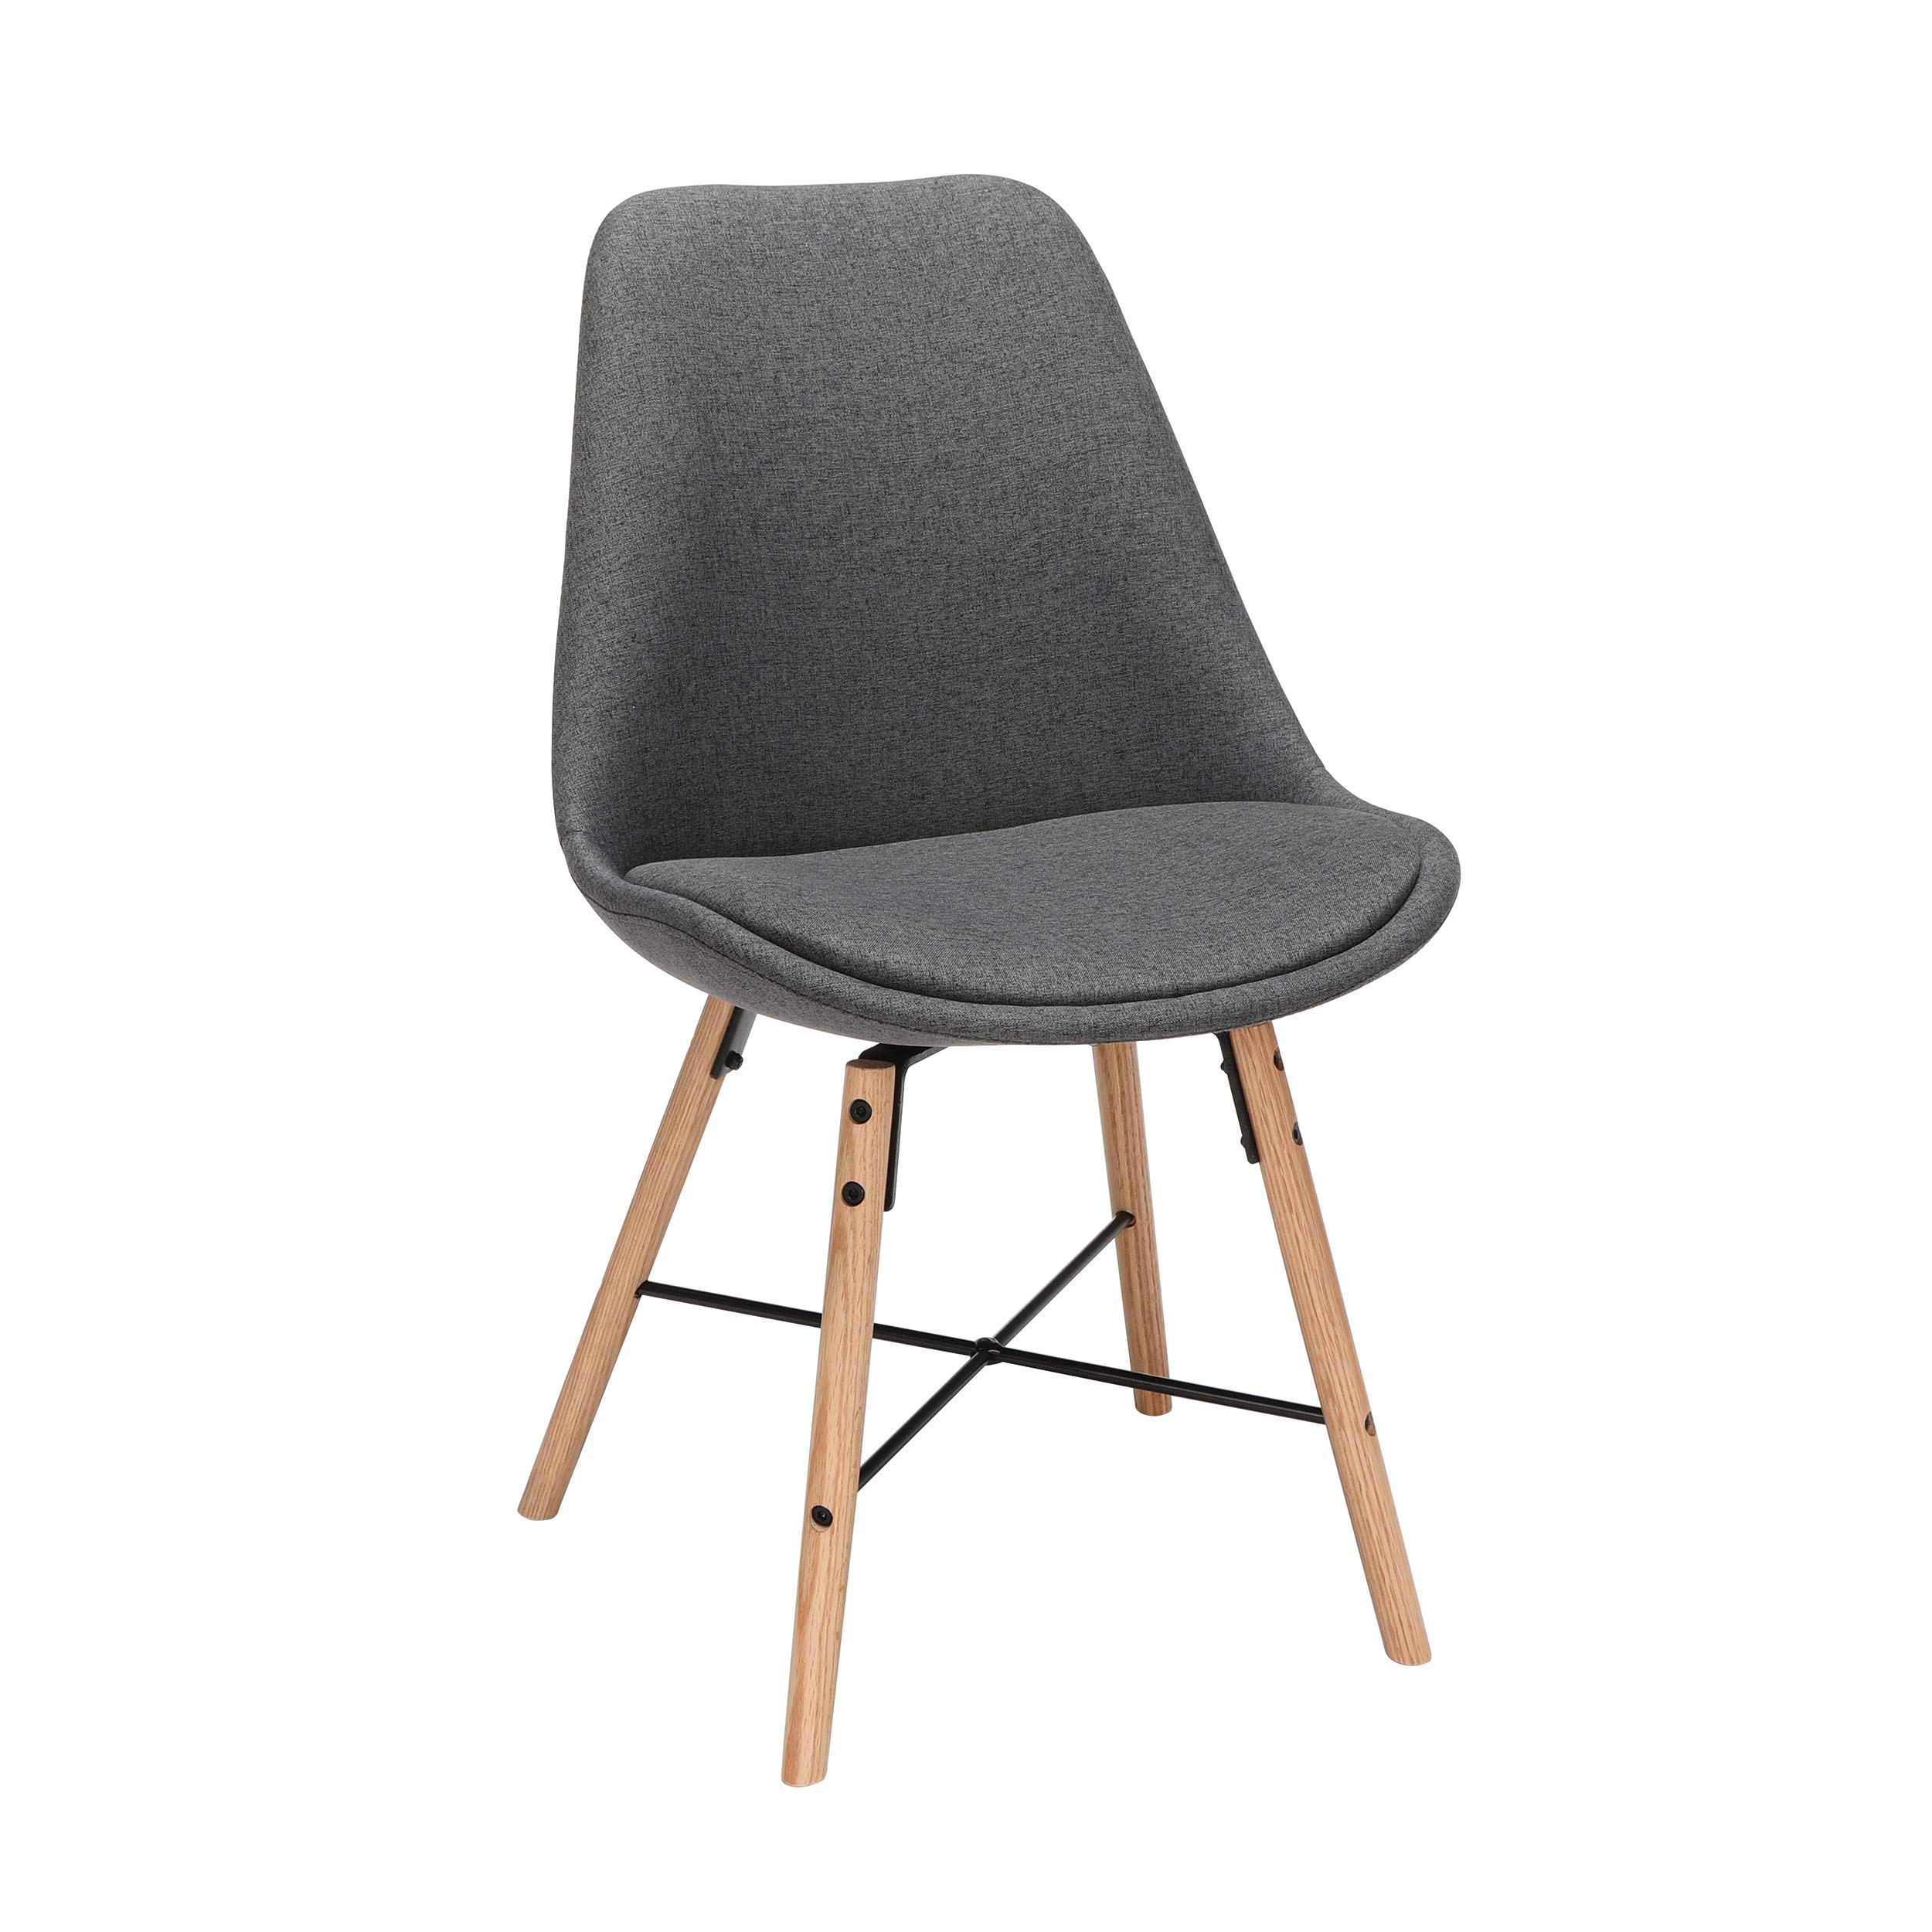 OFM 161 Collection Mid Century Modern 18'' Fabric Dining Chairs with Fabric Seat Cushion, Beechwood Legs with Wire Accent, 2 Pack, in Dark Gray (161-F18A-DGRY-2) by OFM